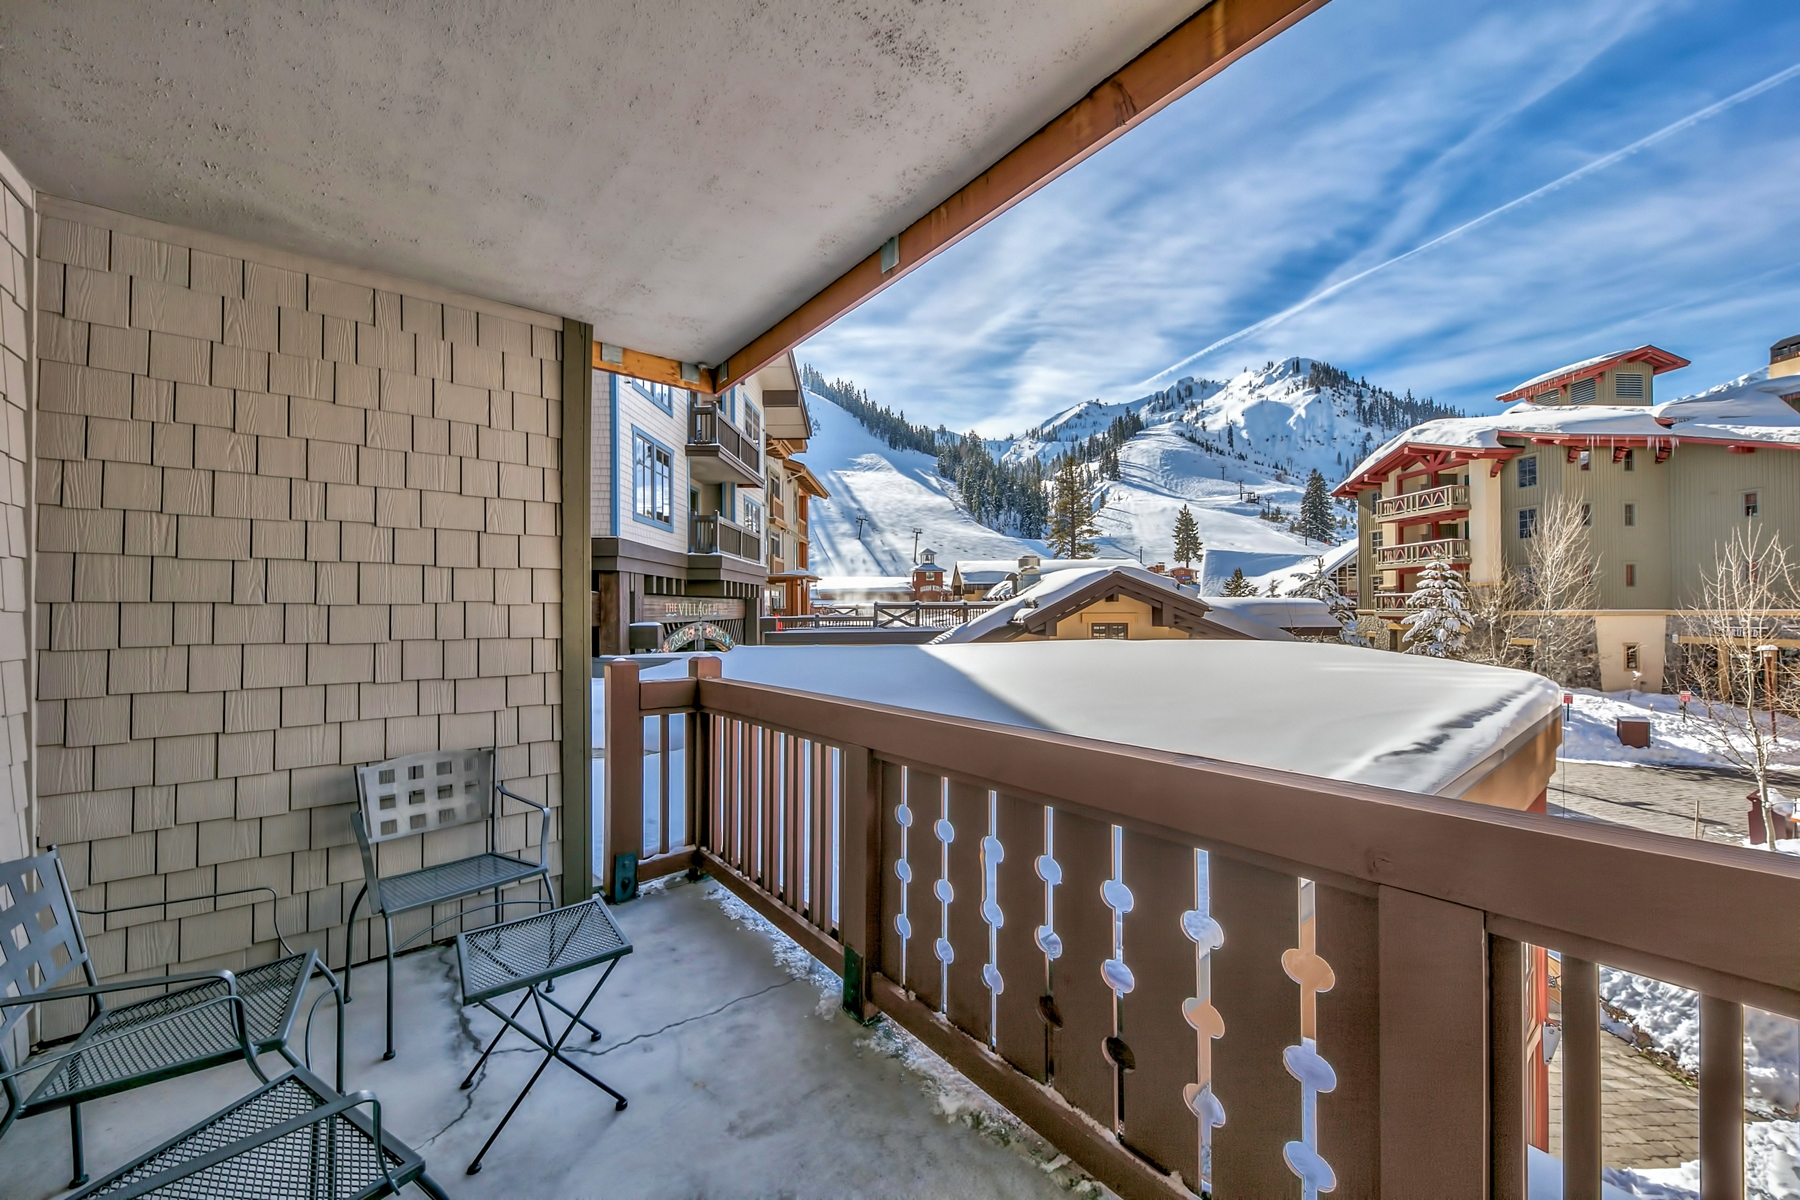 Additional photo for property listing at 1850 Village South Road # 4-210, Olympic Valley, CA 1850 Village South Road # 4-210 Olympic Valley, California 96161 United States